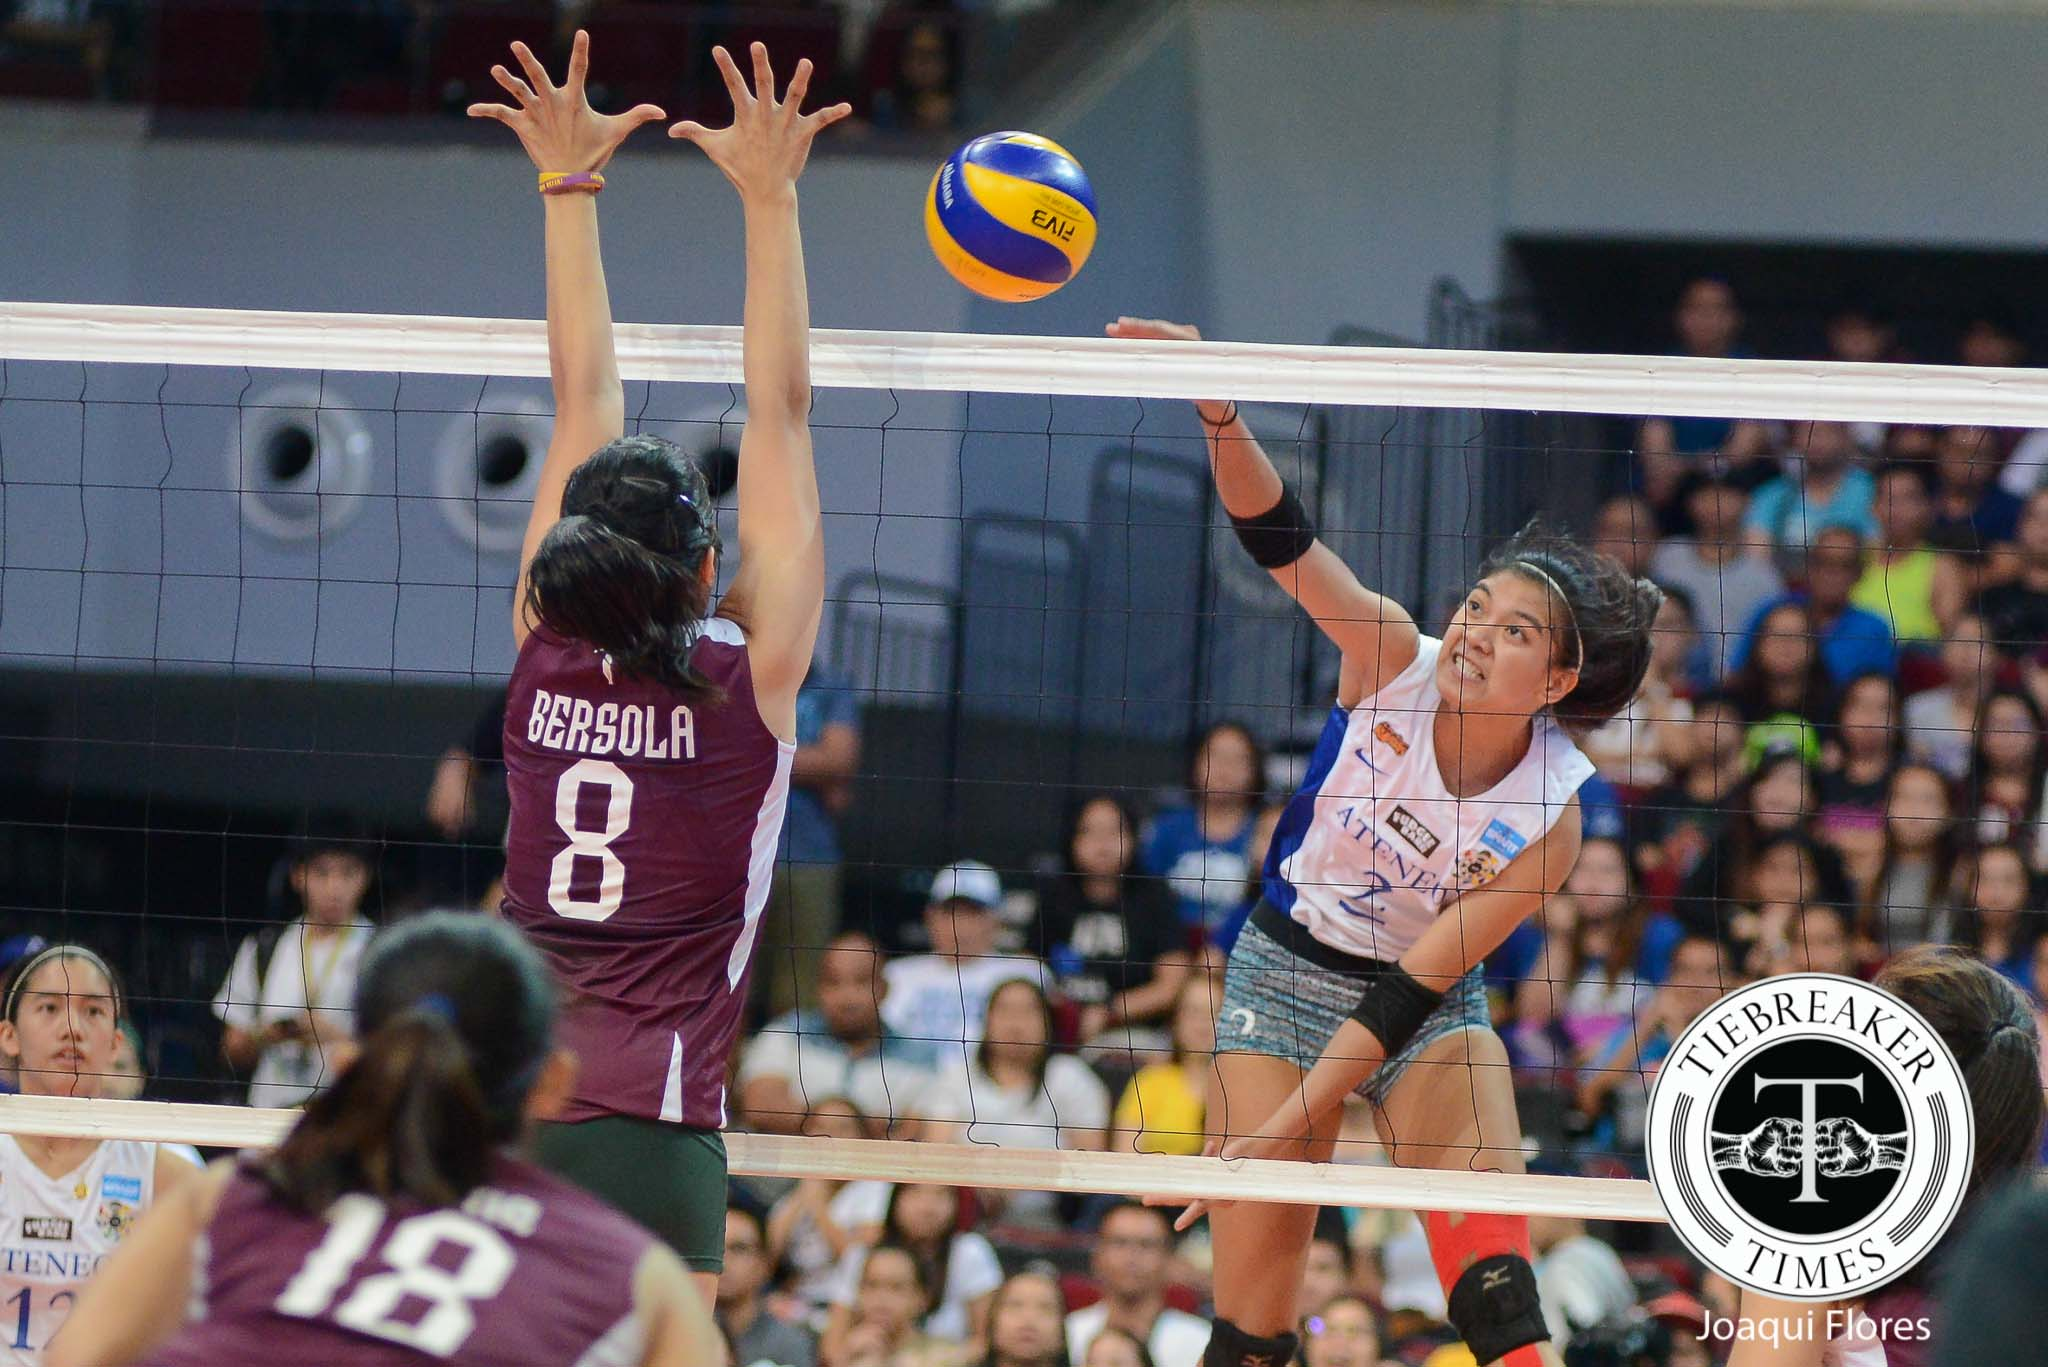 Tiebreaker Times Five for Five: Ateneo barges into Finals after sweeping UP ADMU News UAAP UP Volleyball  UP Women's Volleyball UAAP Season 78 Women's Volleyball UAAP Season 78 Nicole Tiamzon Kathy Bersola Jho Maraguinot Jerry Yee Isa Molde Ateneo Women's Volleyball Amy Ahomiro. Tai Bundit Alyssa Valdez